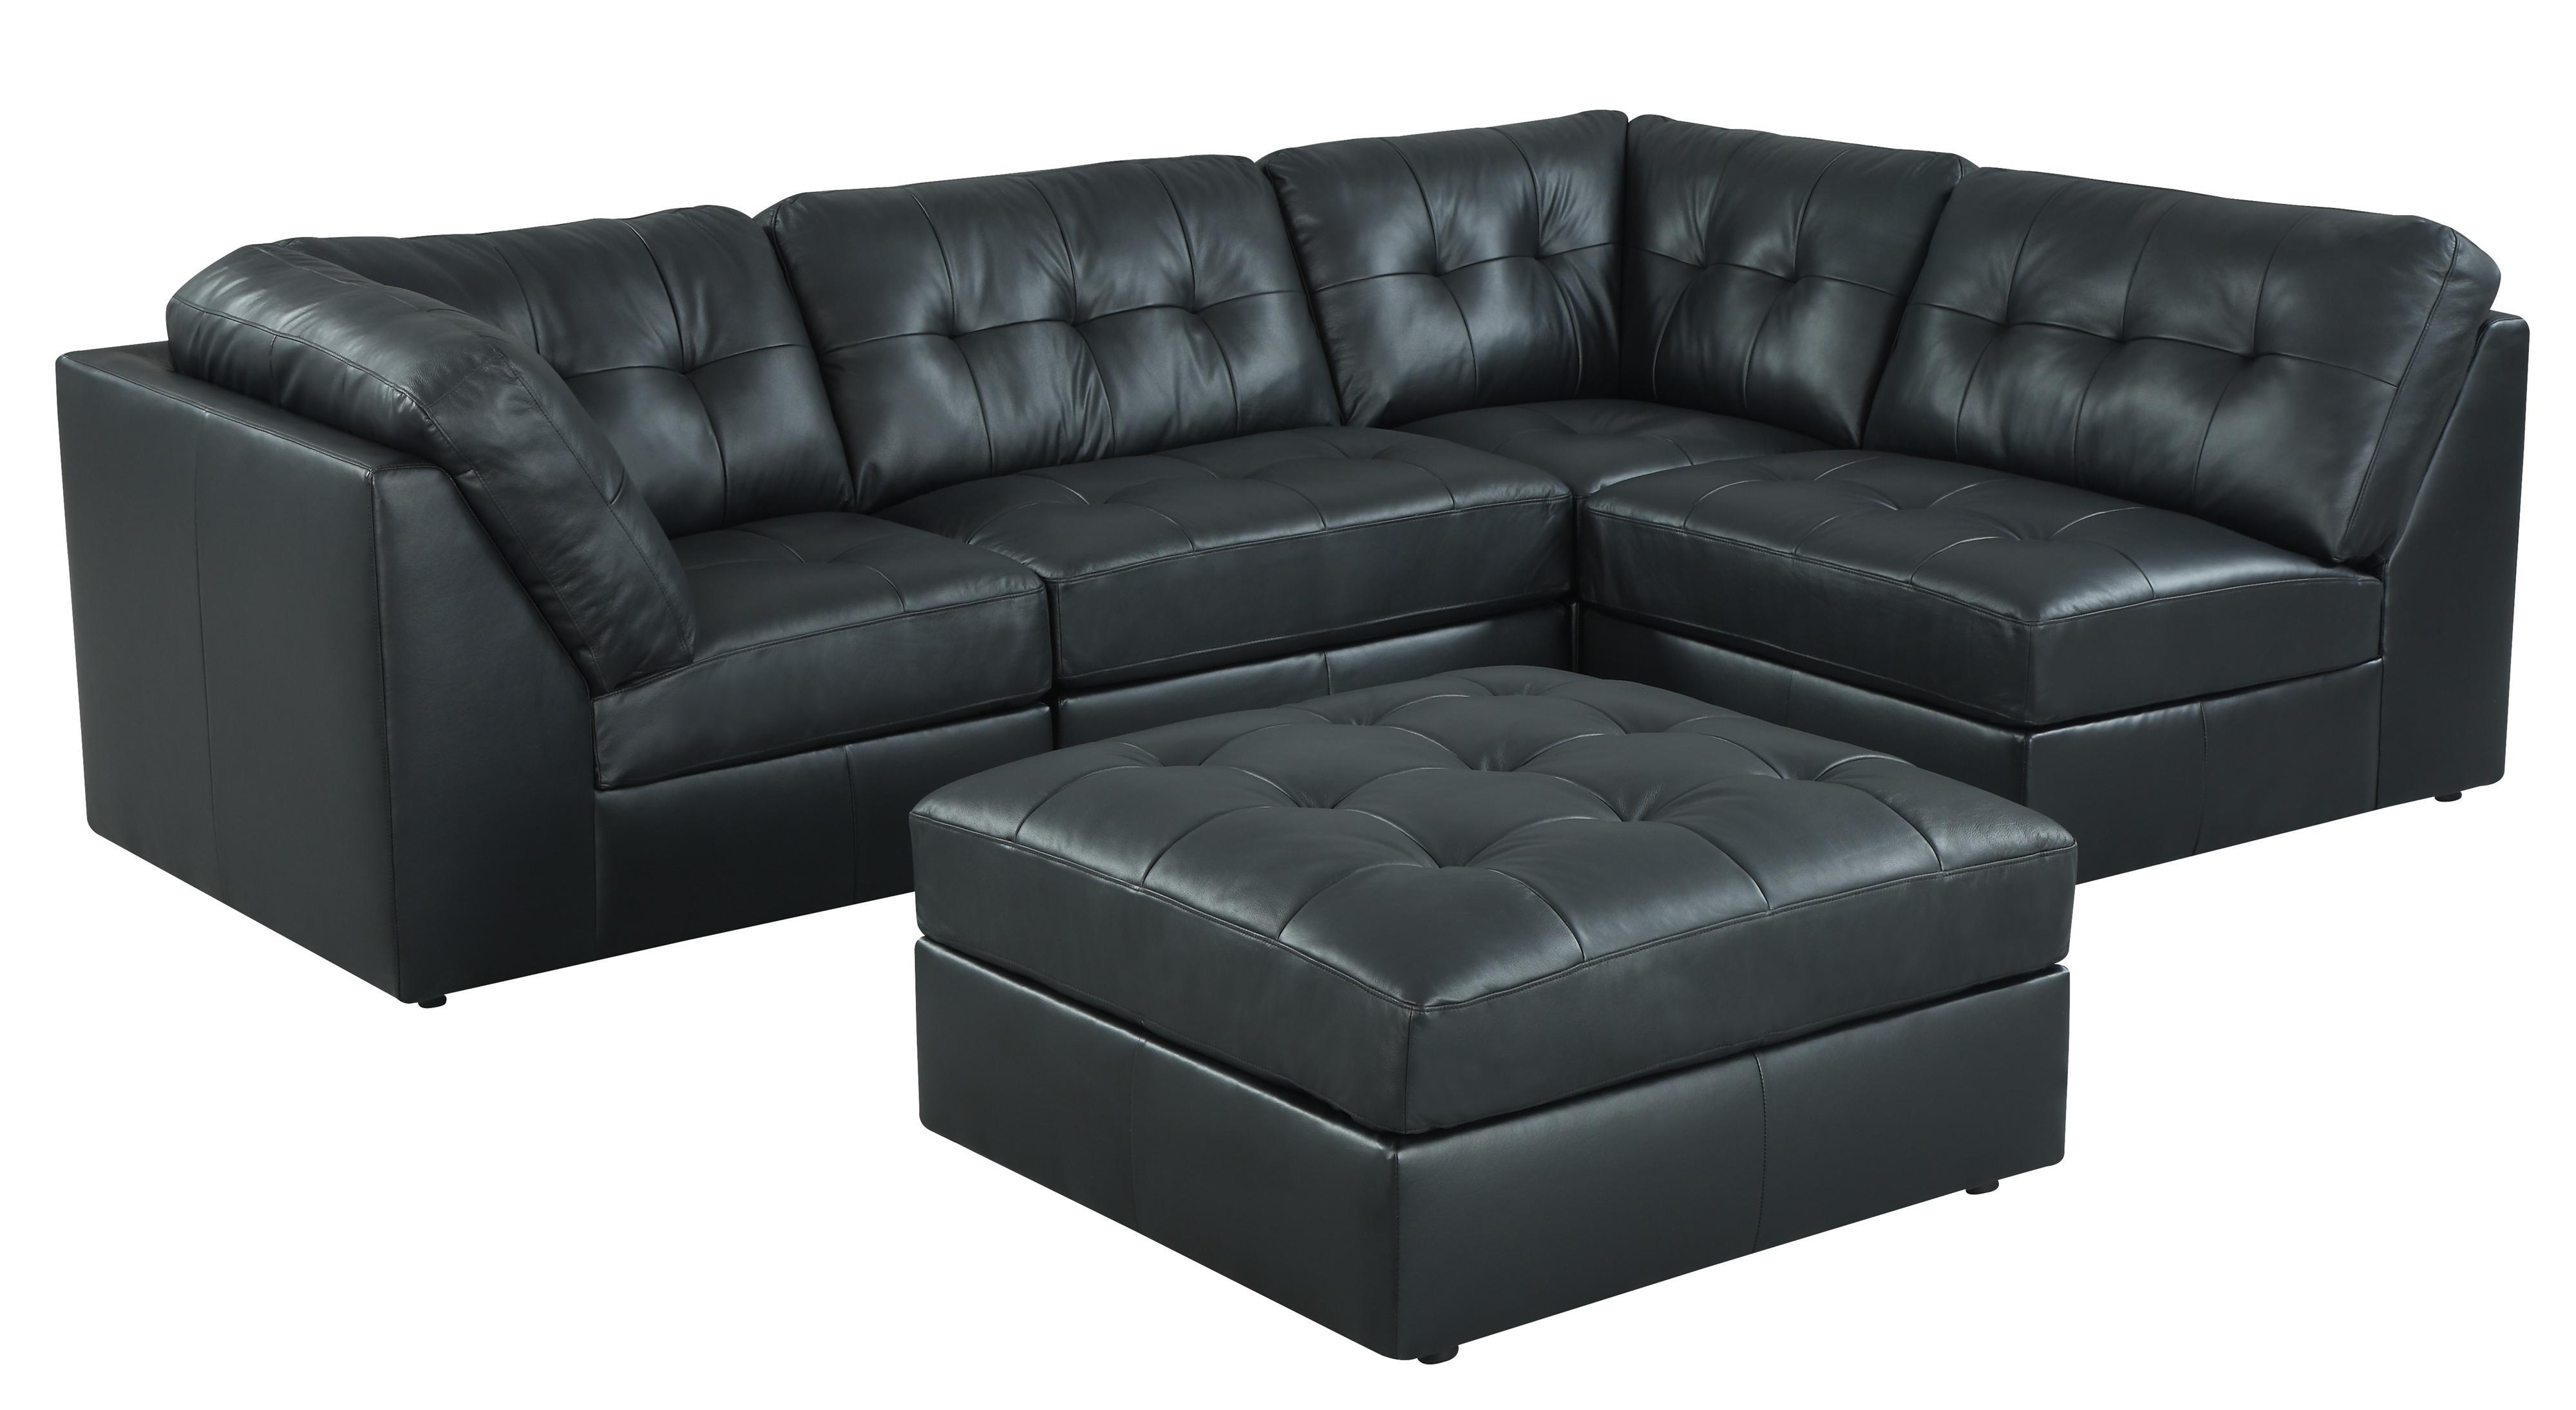 Lifestyle 9377 Sectional Sofa - Item Number: 9377 Black